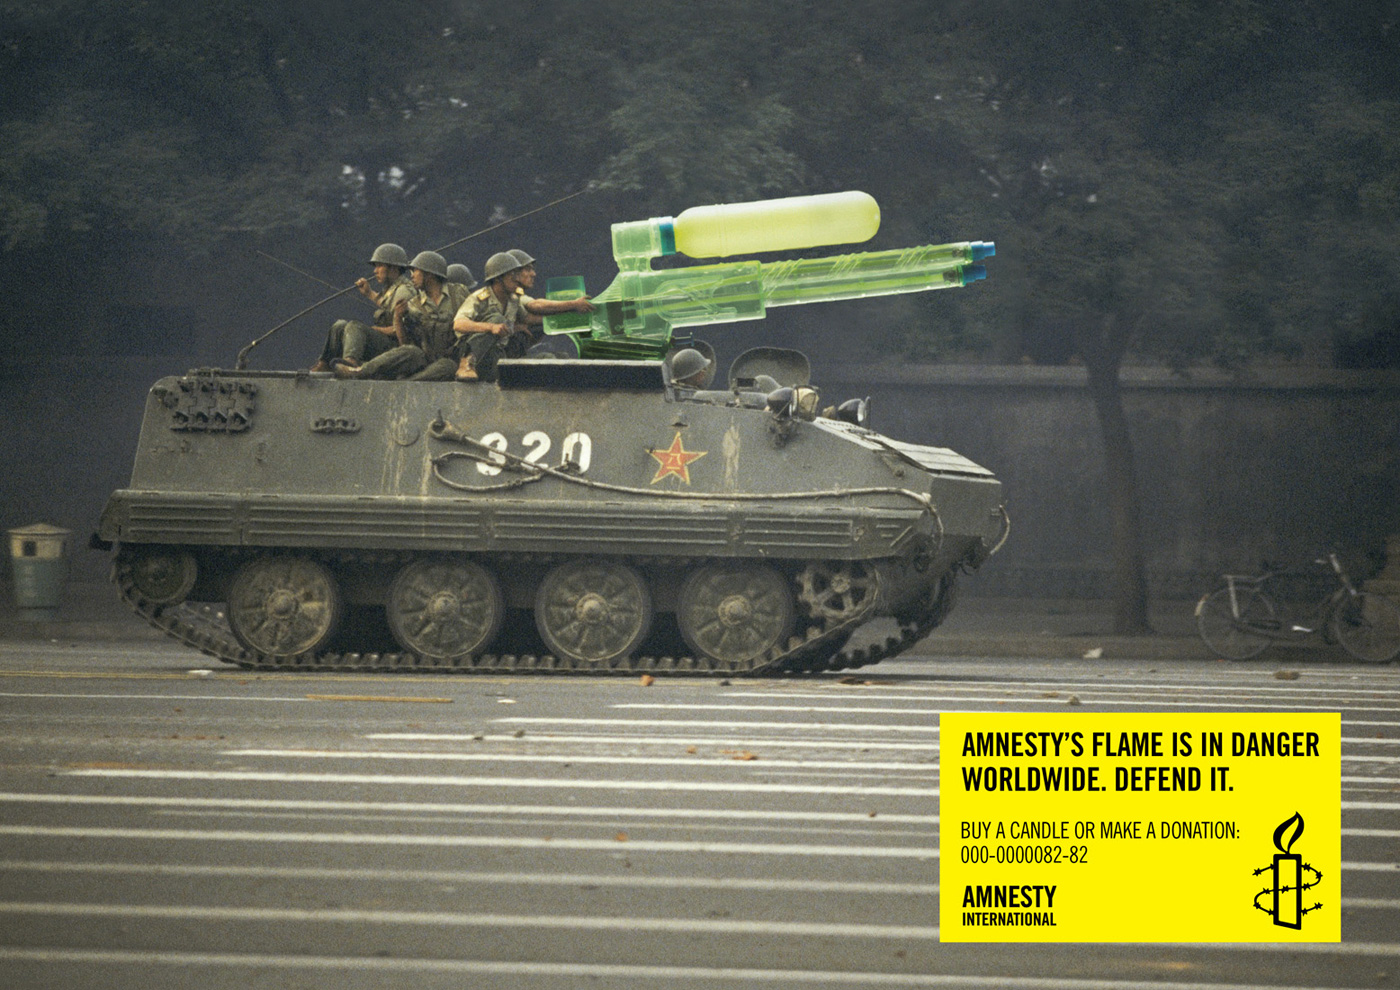 amnesty-flame-danger-Asia_1